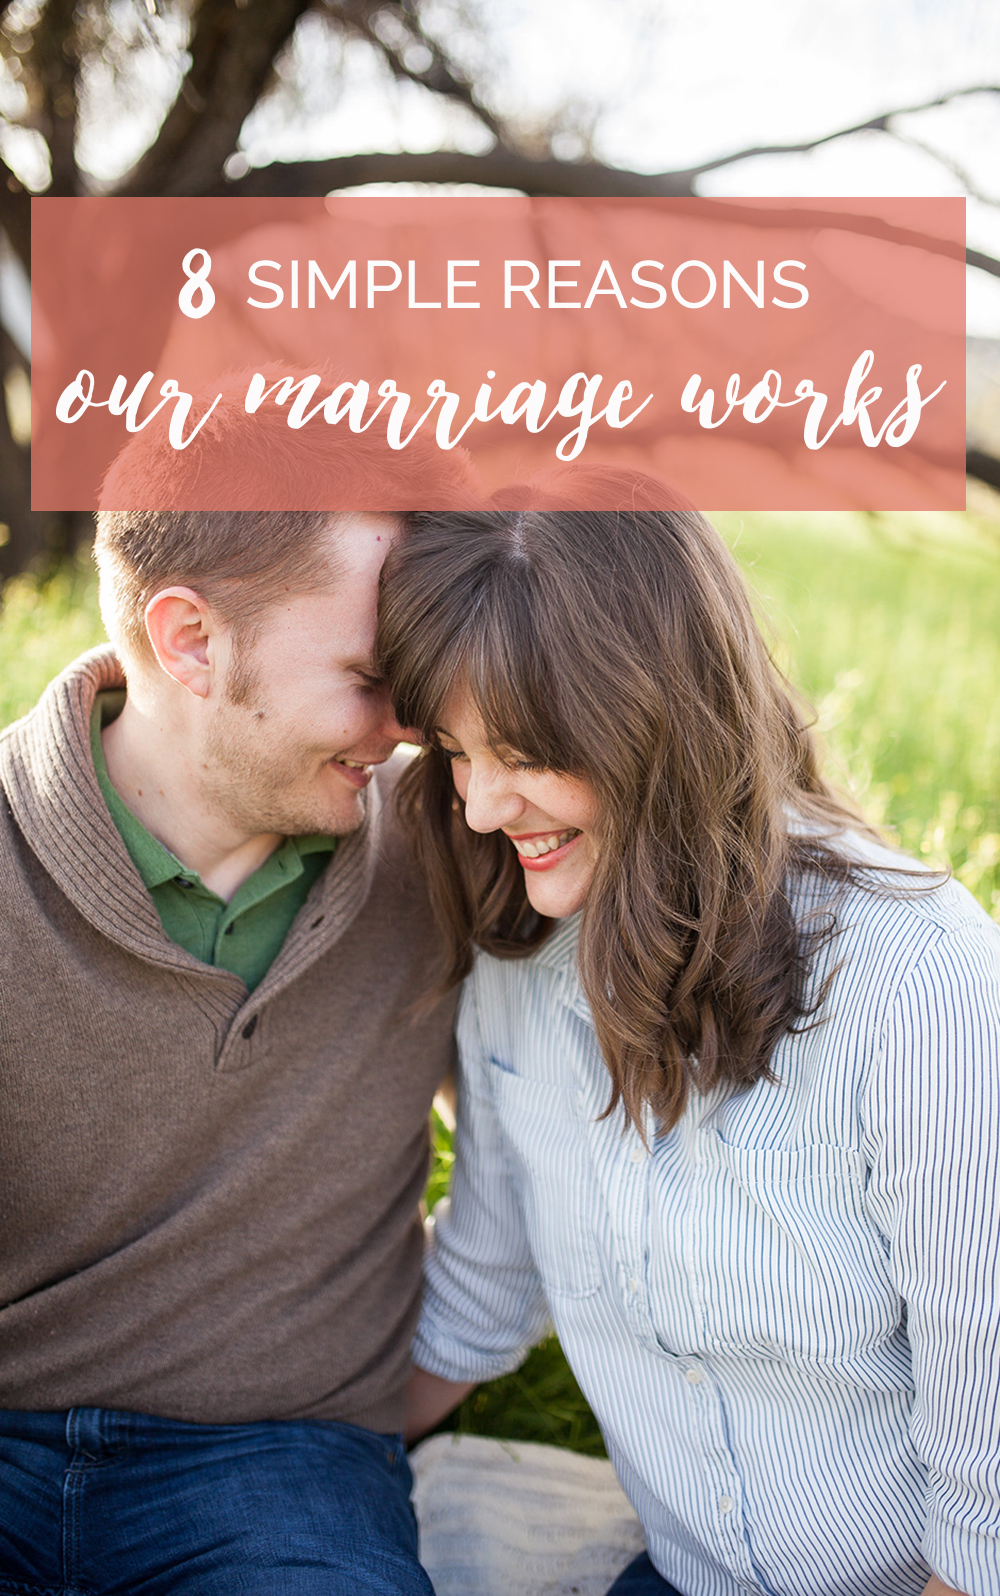 8 simple reasons our marriage works. After 10 years of marriage, we've figure out a few things that help strengthen & improve our relationship.